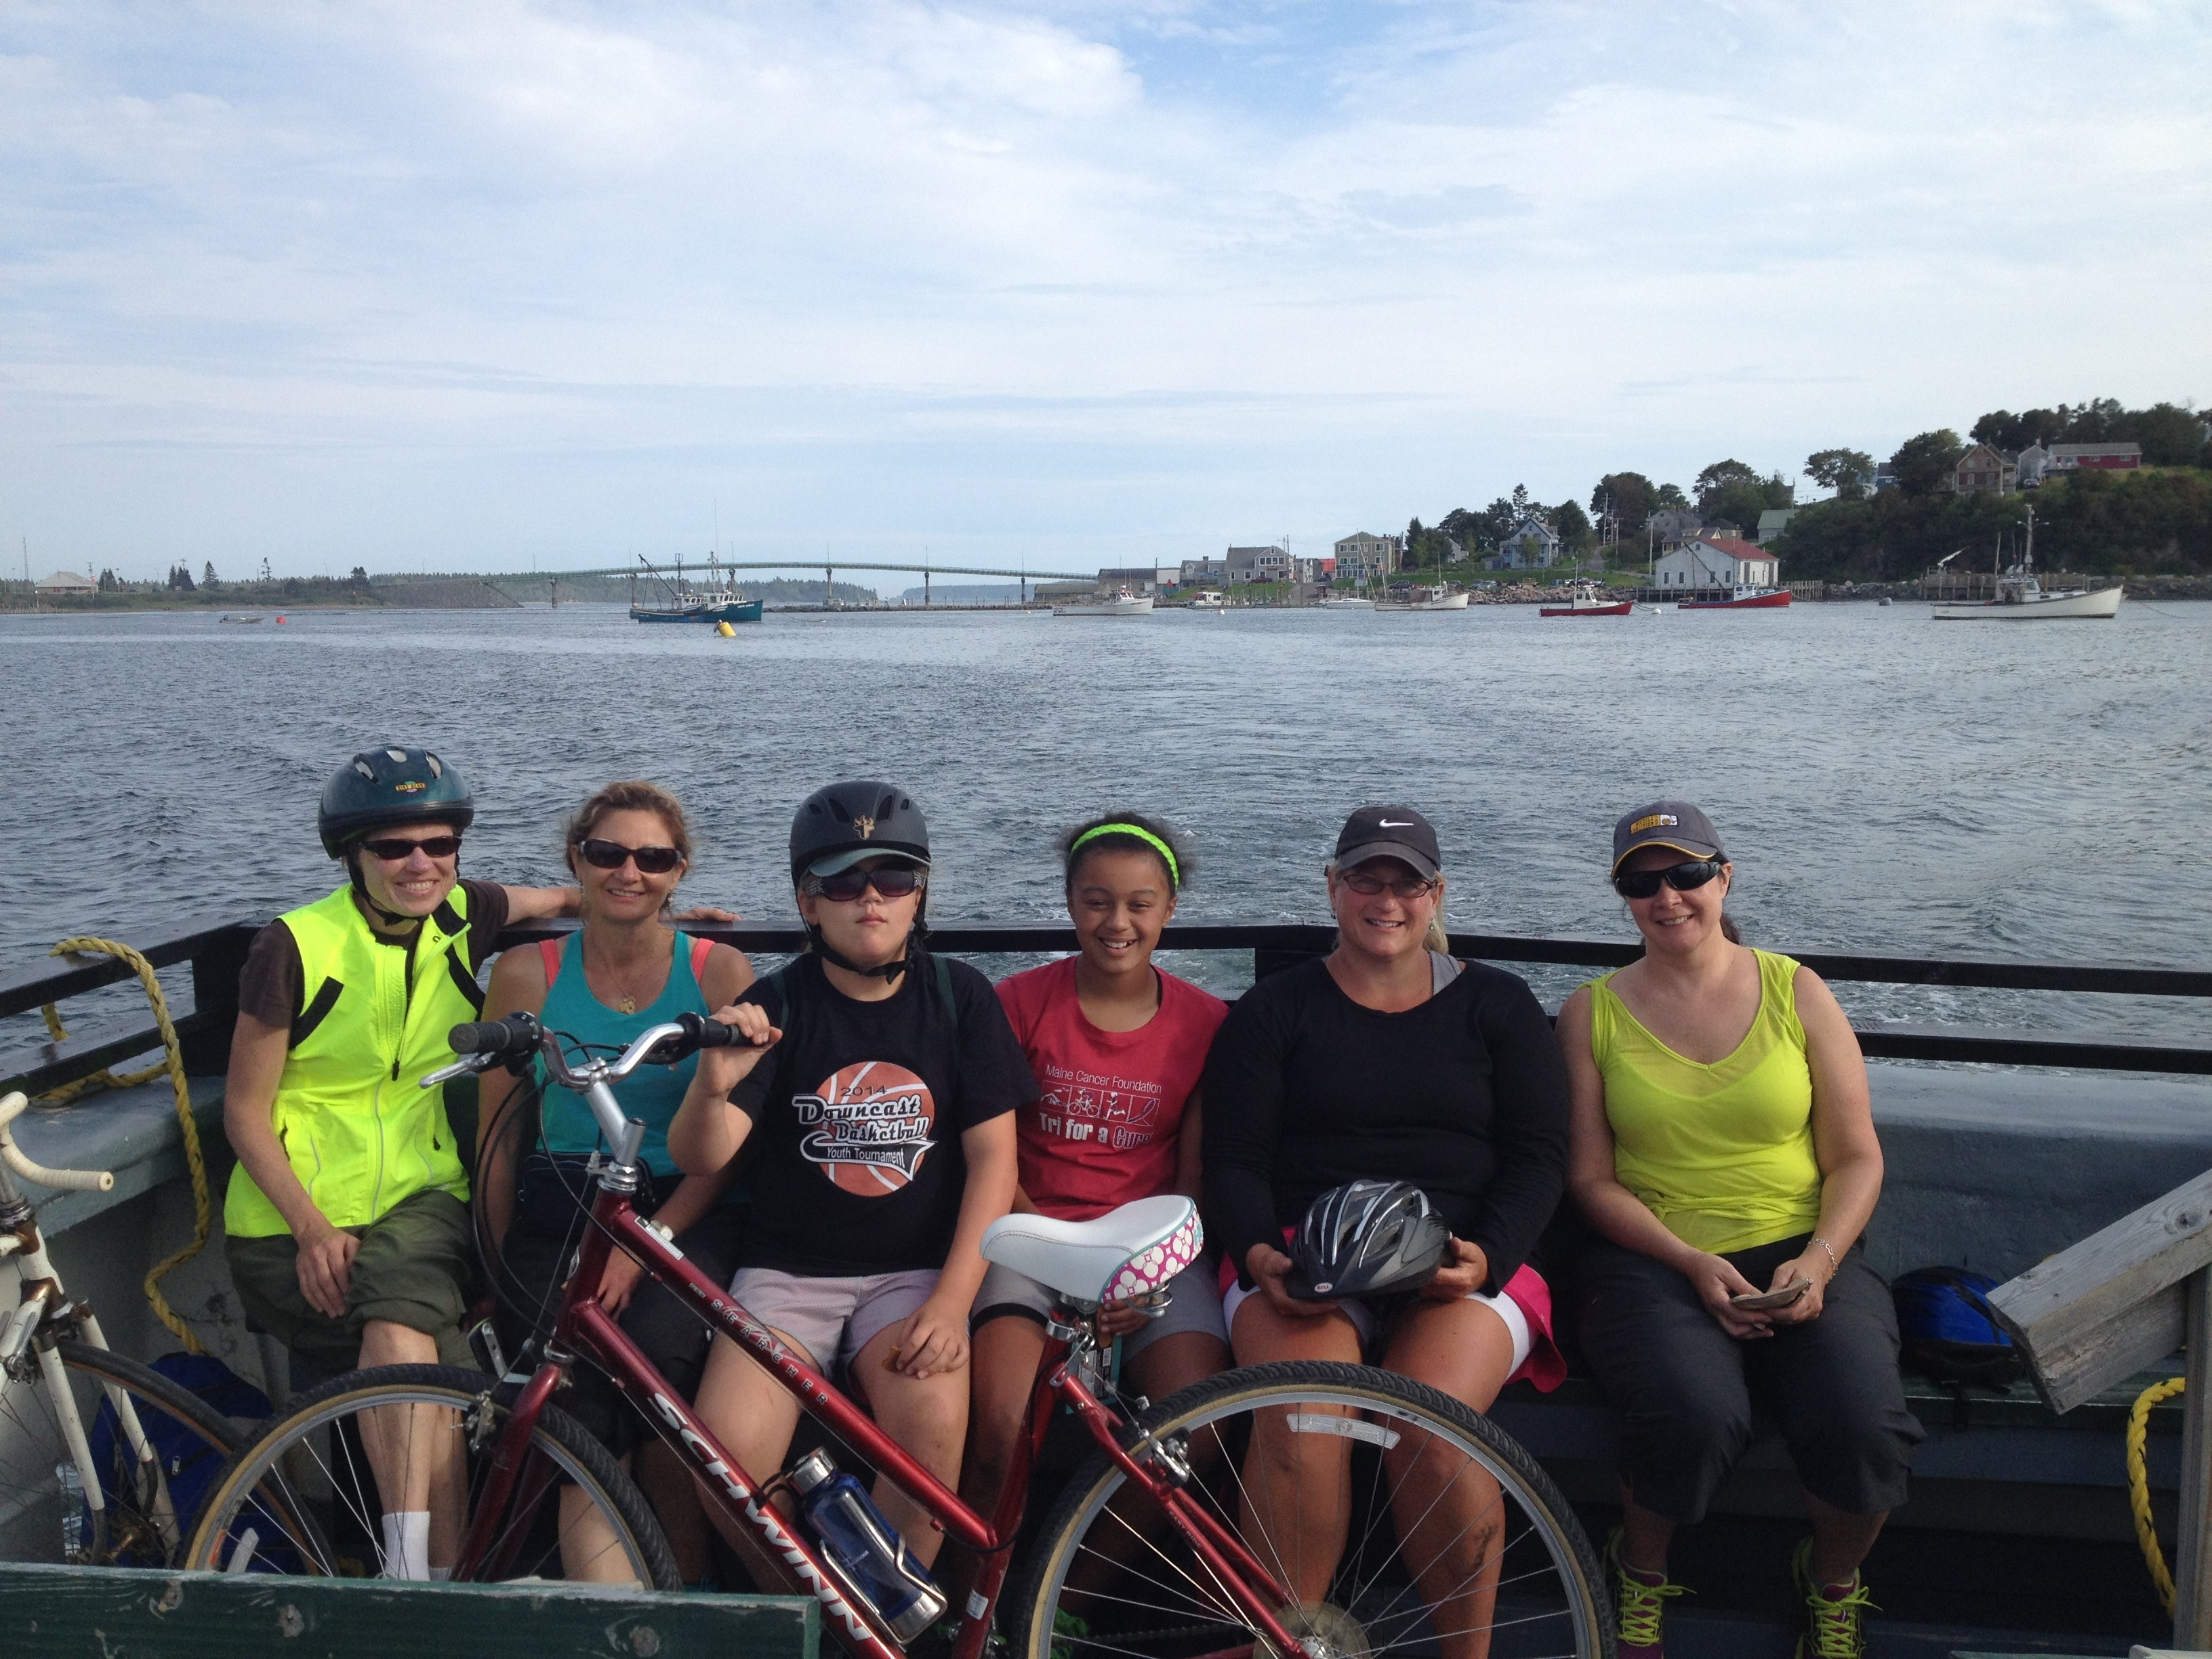 Two countries (US & Canada), 3 ferries and 2 island bike tour!